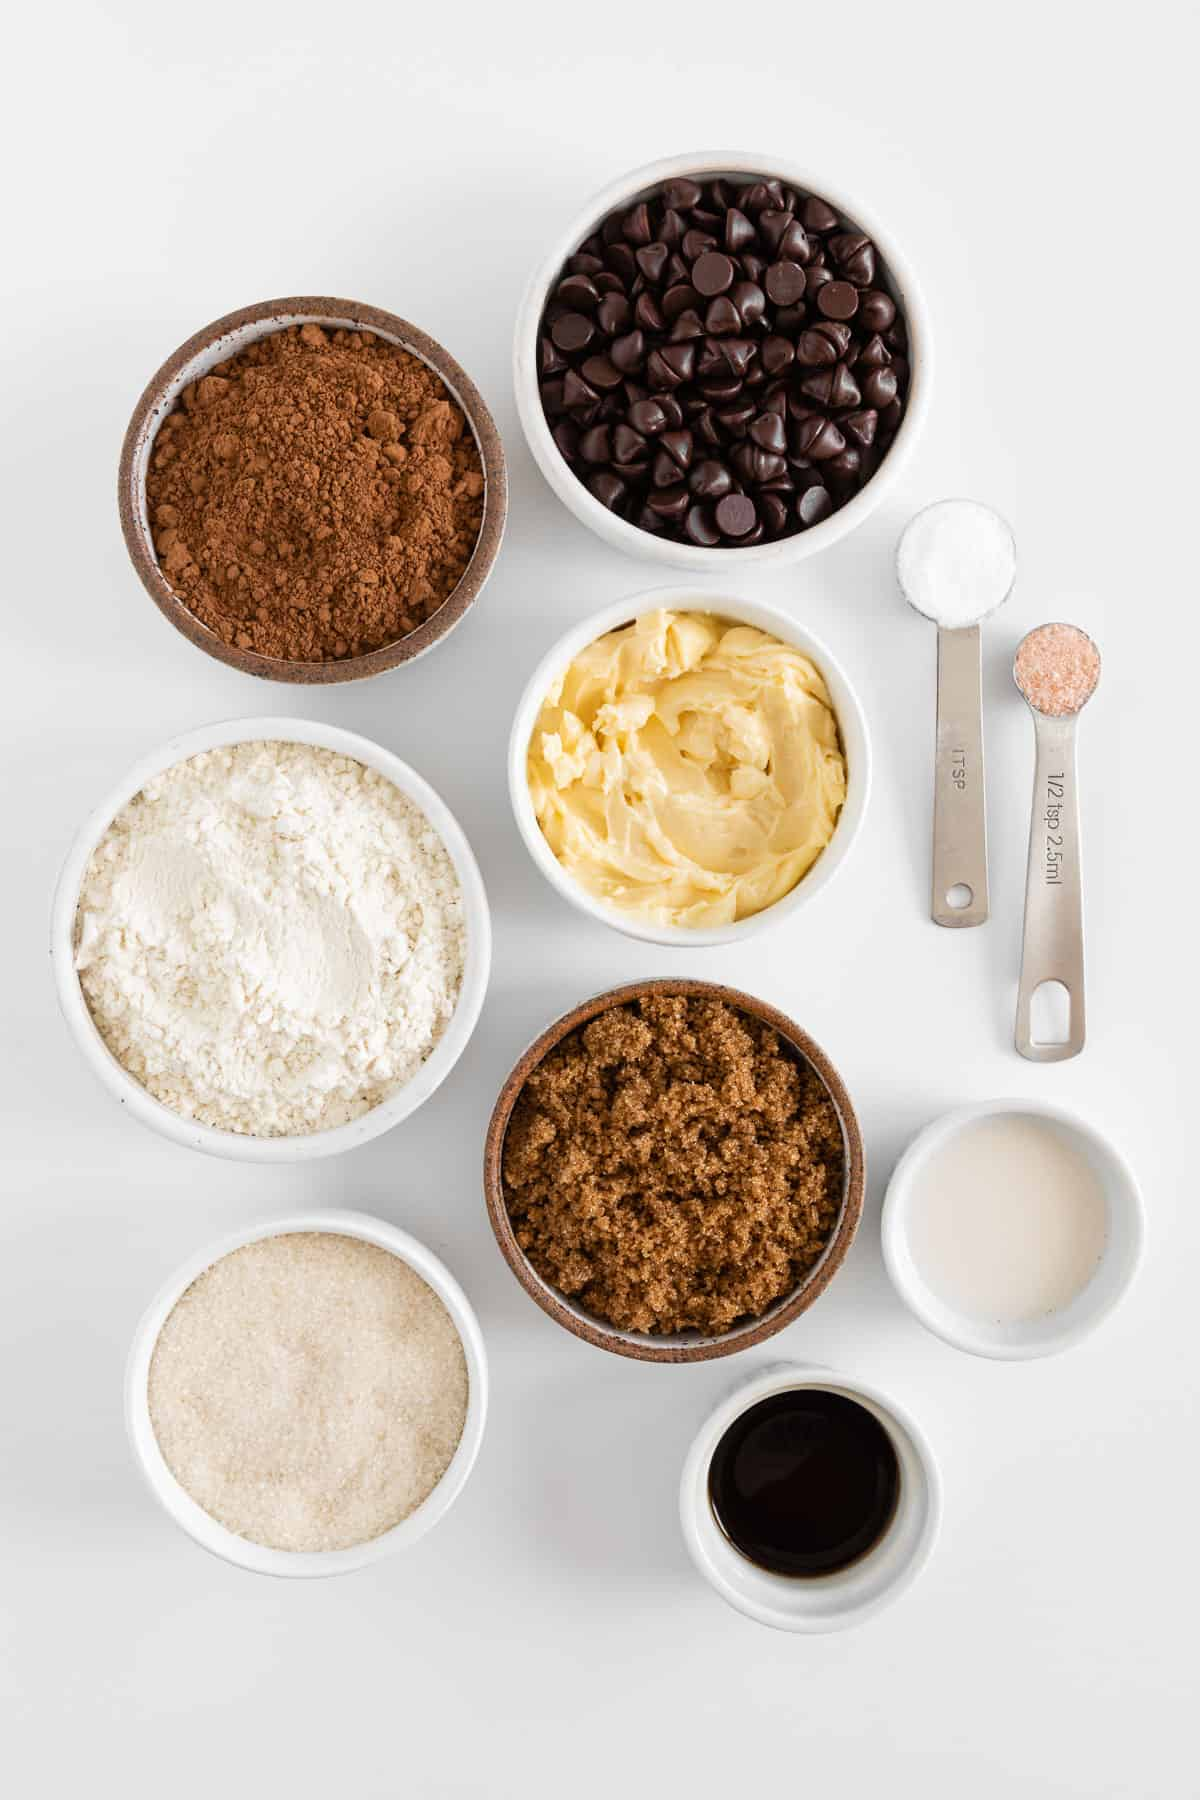 small white bowls filled with chocolate chips, cocoa powder, flour, vegan butter, sugar, brown sugar, vanilla extract, and non-dairy milk